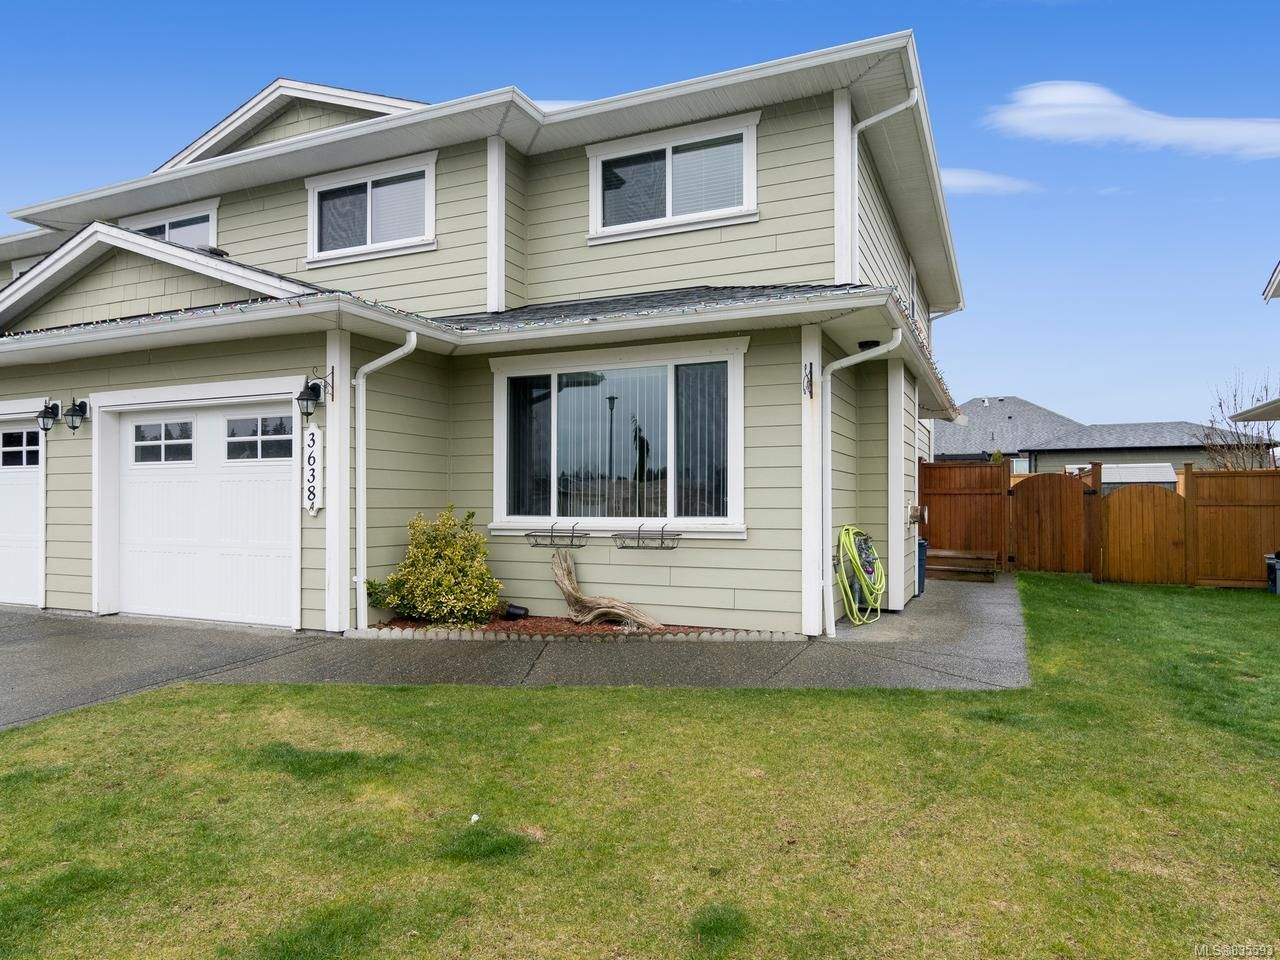 Main Photo: A 3638 TYEE DRIVE in CAMPBELL RIVER: CR Willow Point Half Duplex for sale (Campbell River)  : MLS®# 835593